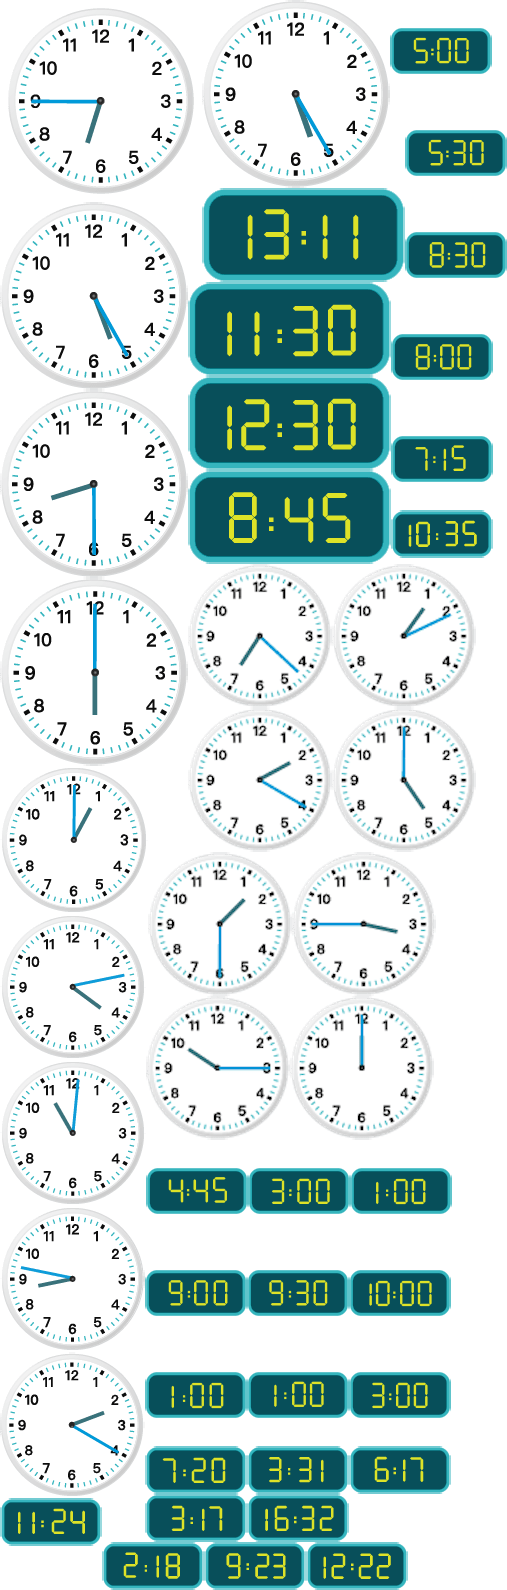 medium resolution of The Worksheet Telling Time to the Minute focuses on Analog and Digital:  24-Hour Clock